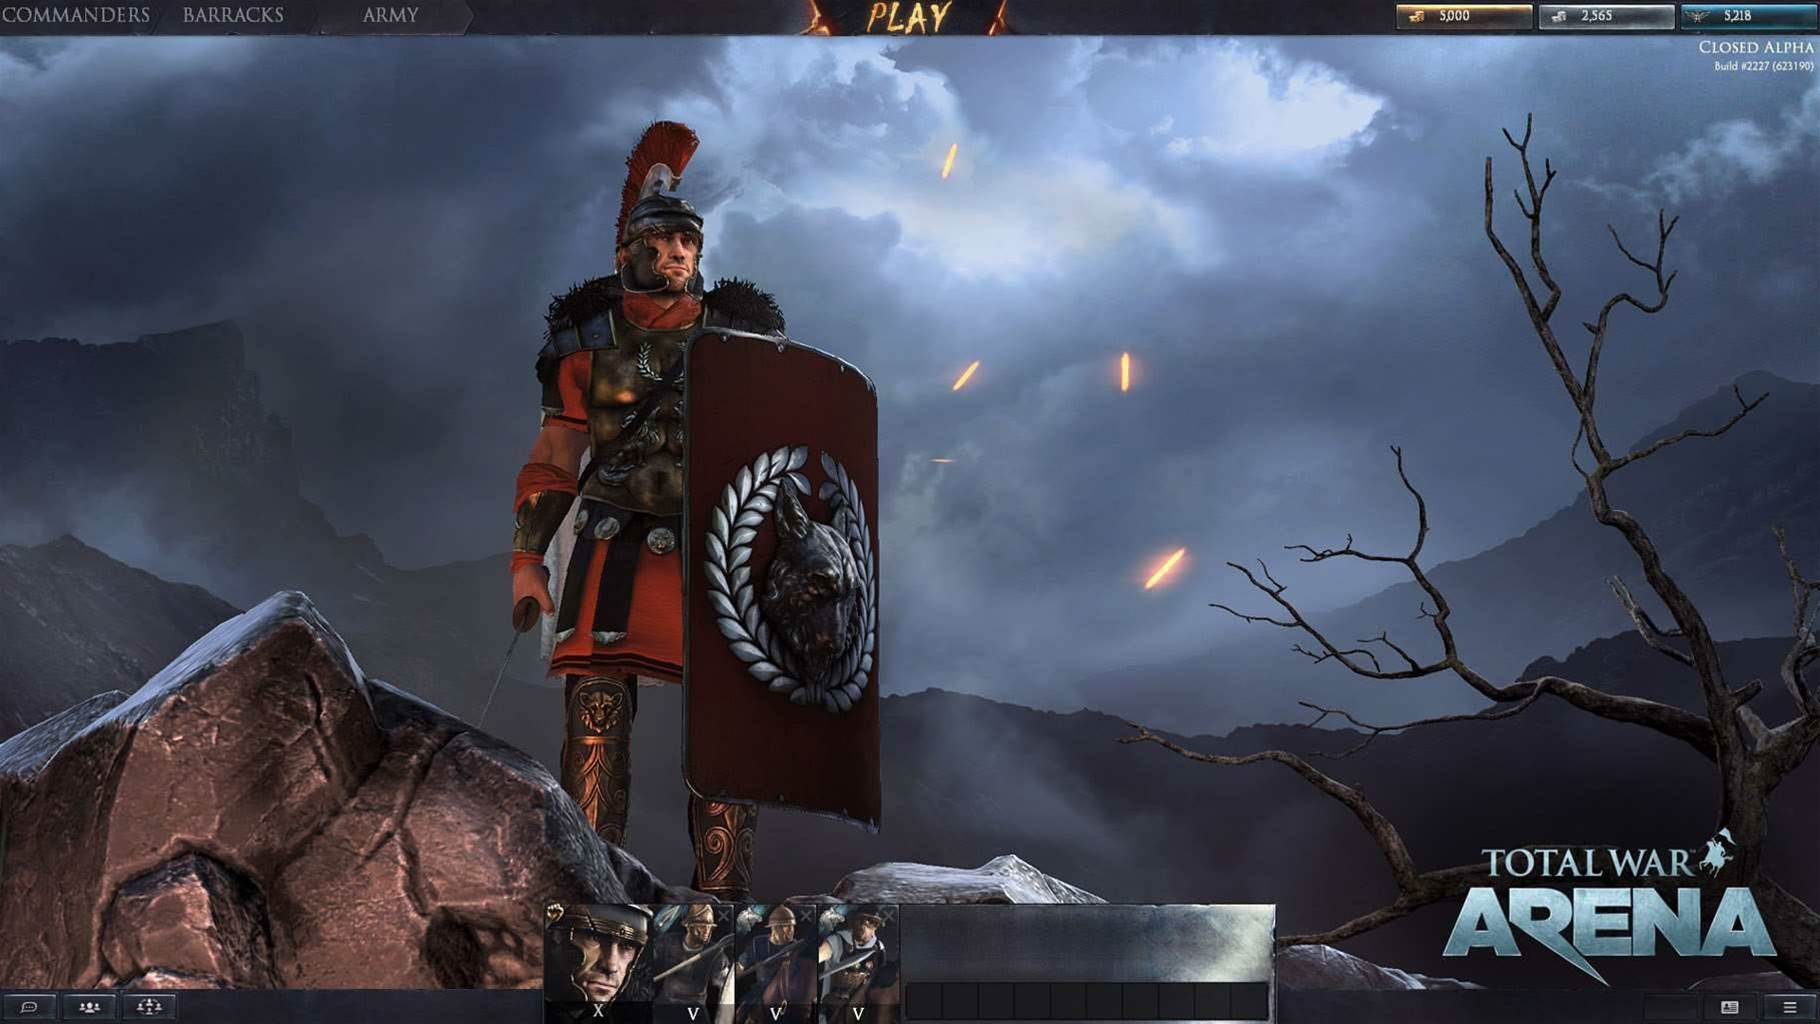 New shots from Total War: Arena